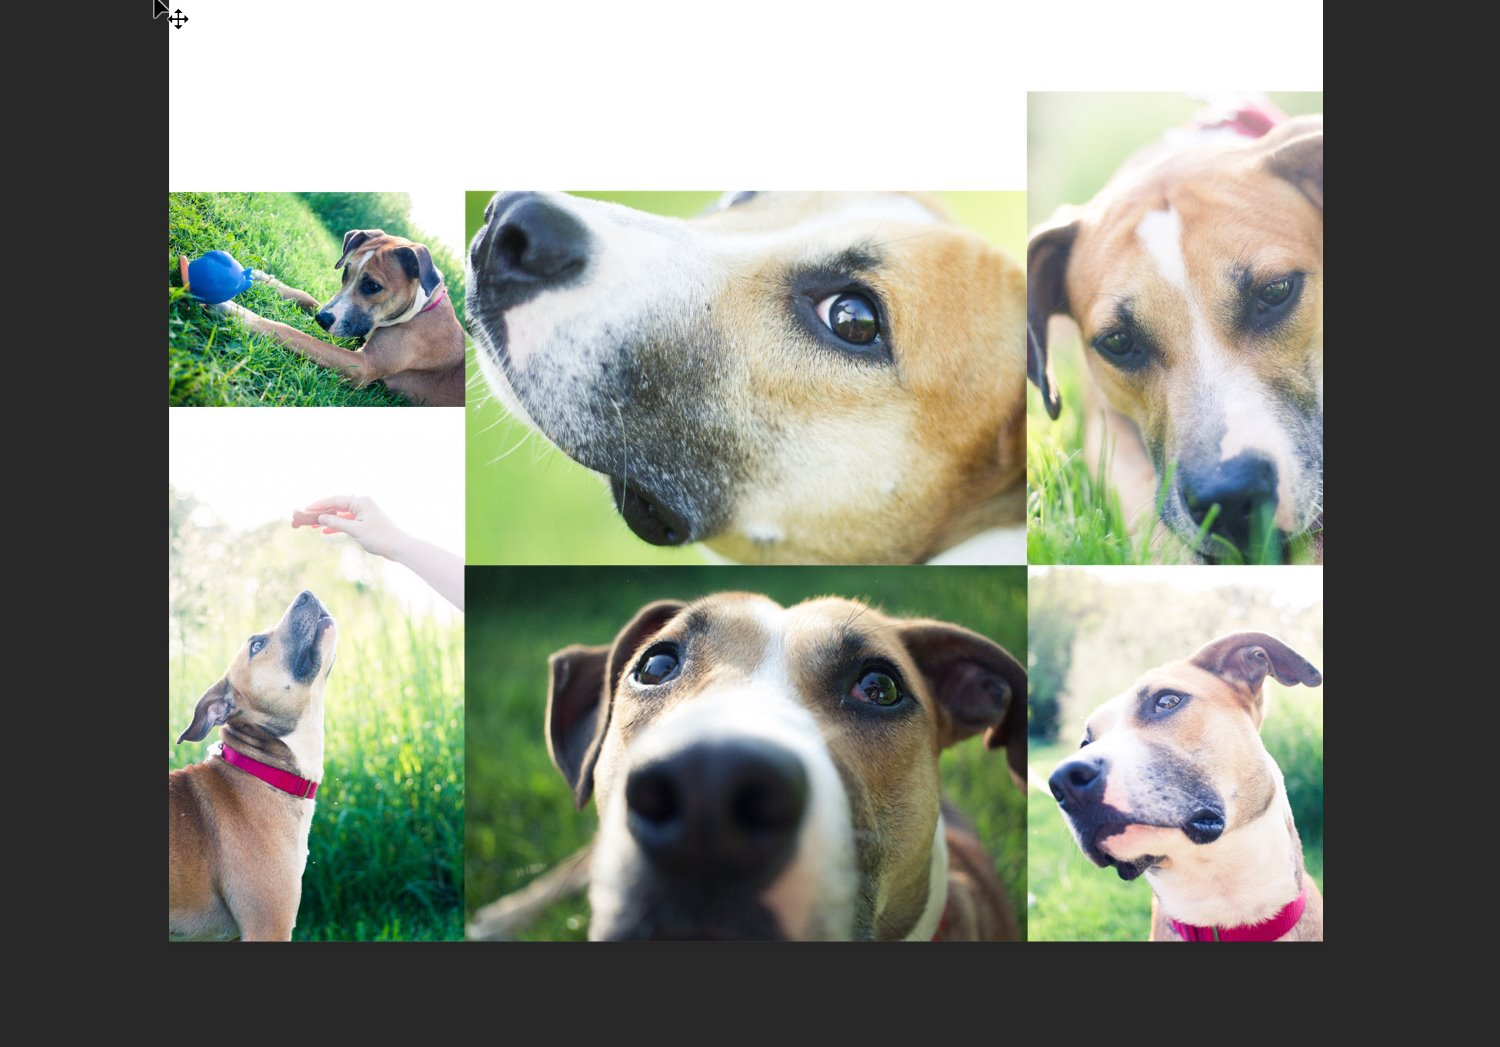 one version of the pet collage in Photoshop